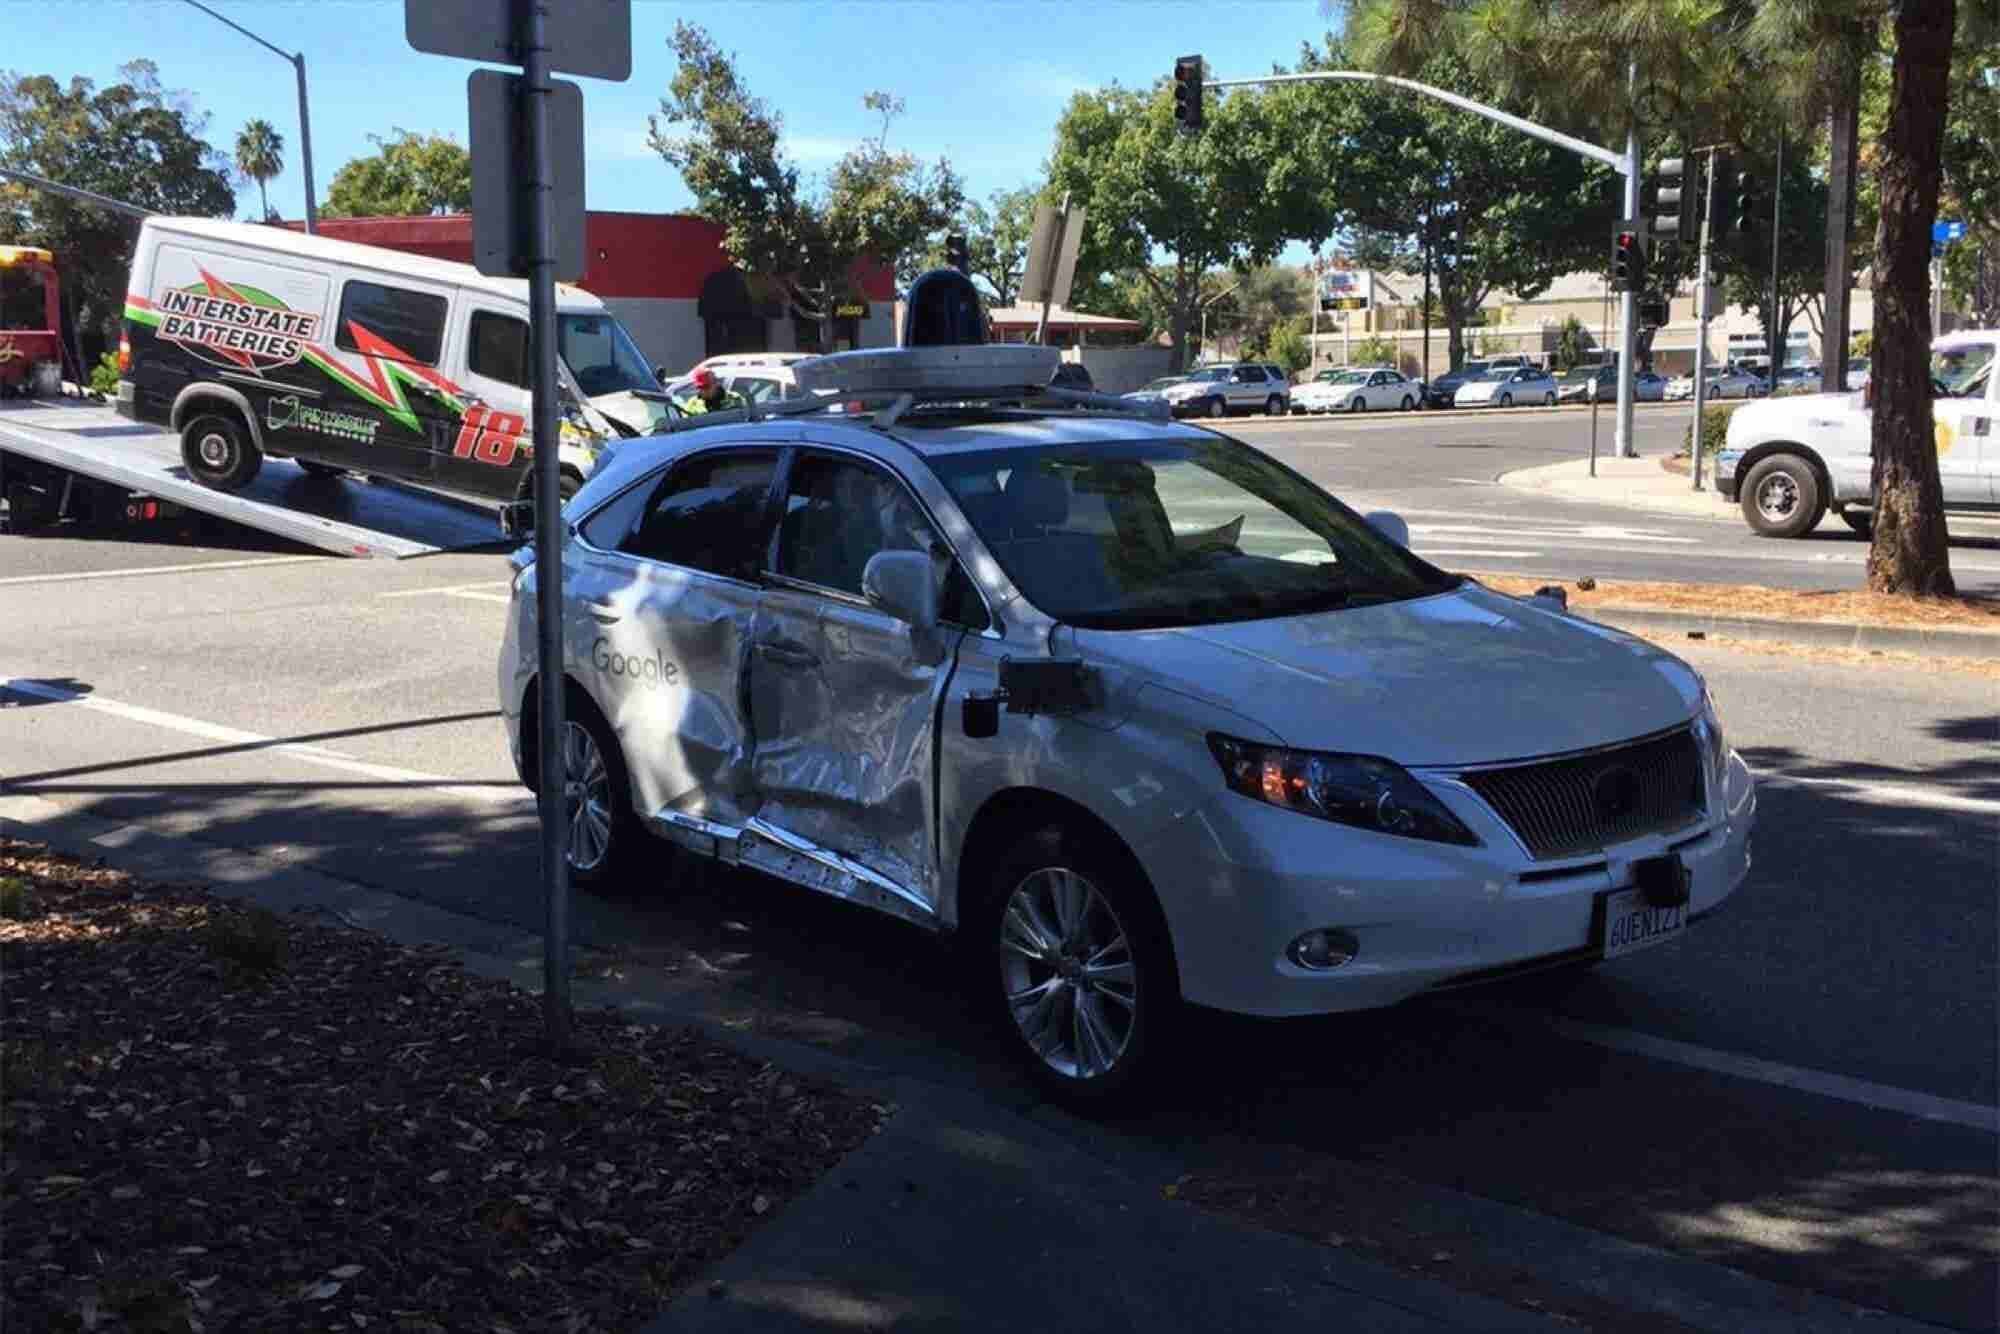 Google Self-Driving Car Involved in Another Crash